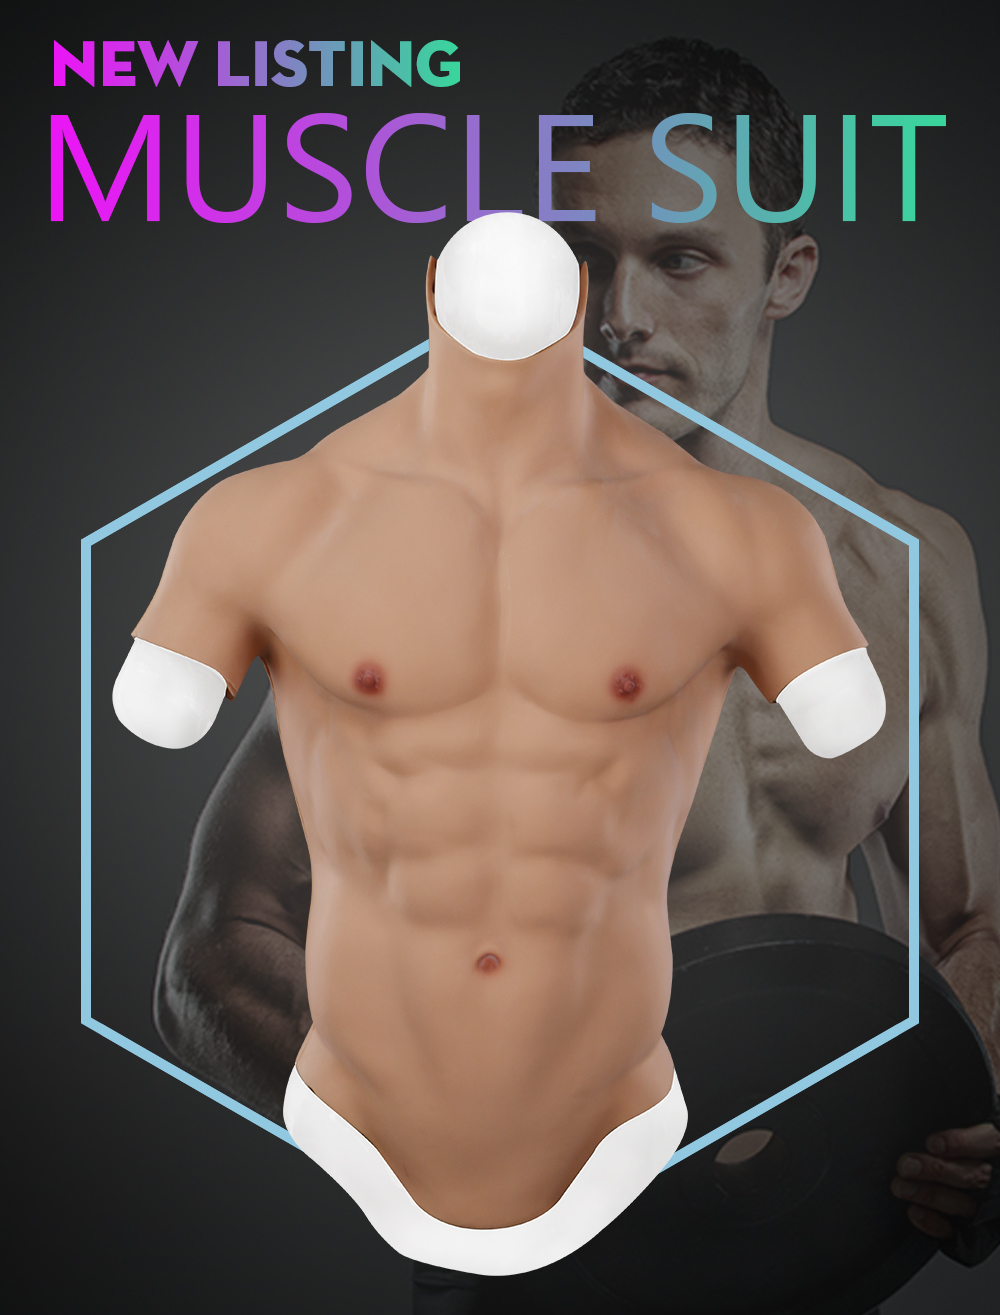 Eyung Silicone Male Muscle Suit Realistic false muscle Artificial fake Belly Man Skin Up Body Chest for Cosplayers Crossdresser  (1)